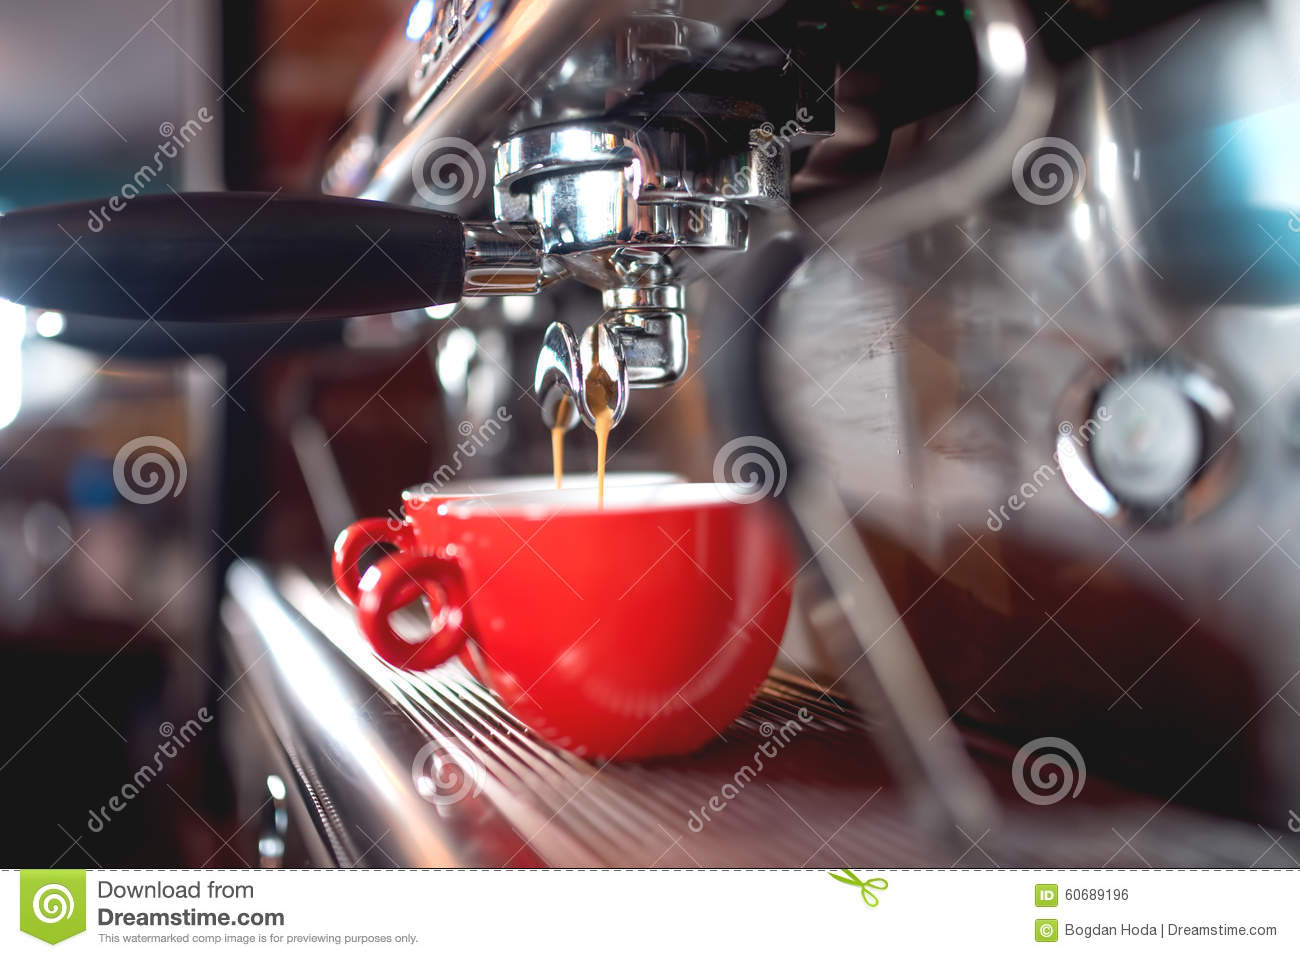 Espresso Machine Pouring Coffee In Cups At Restaurant Or